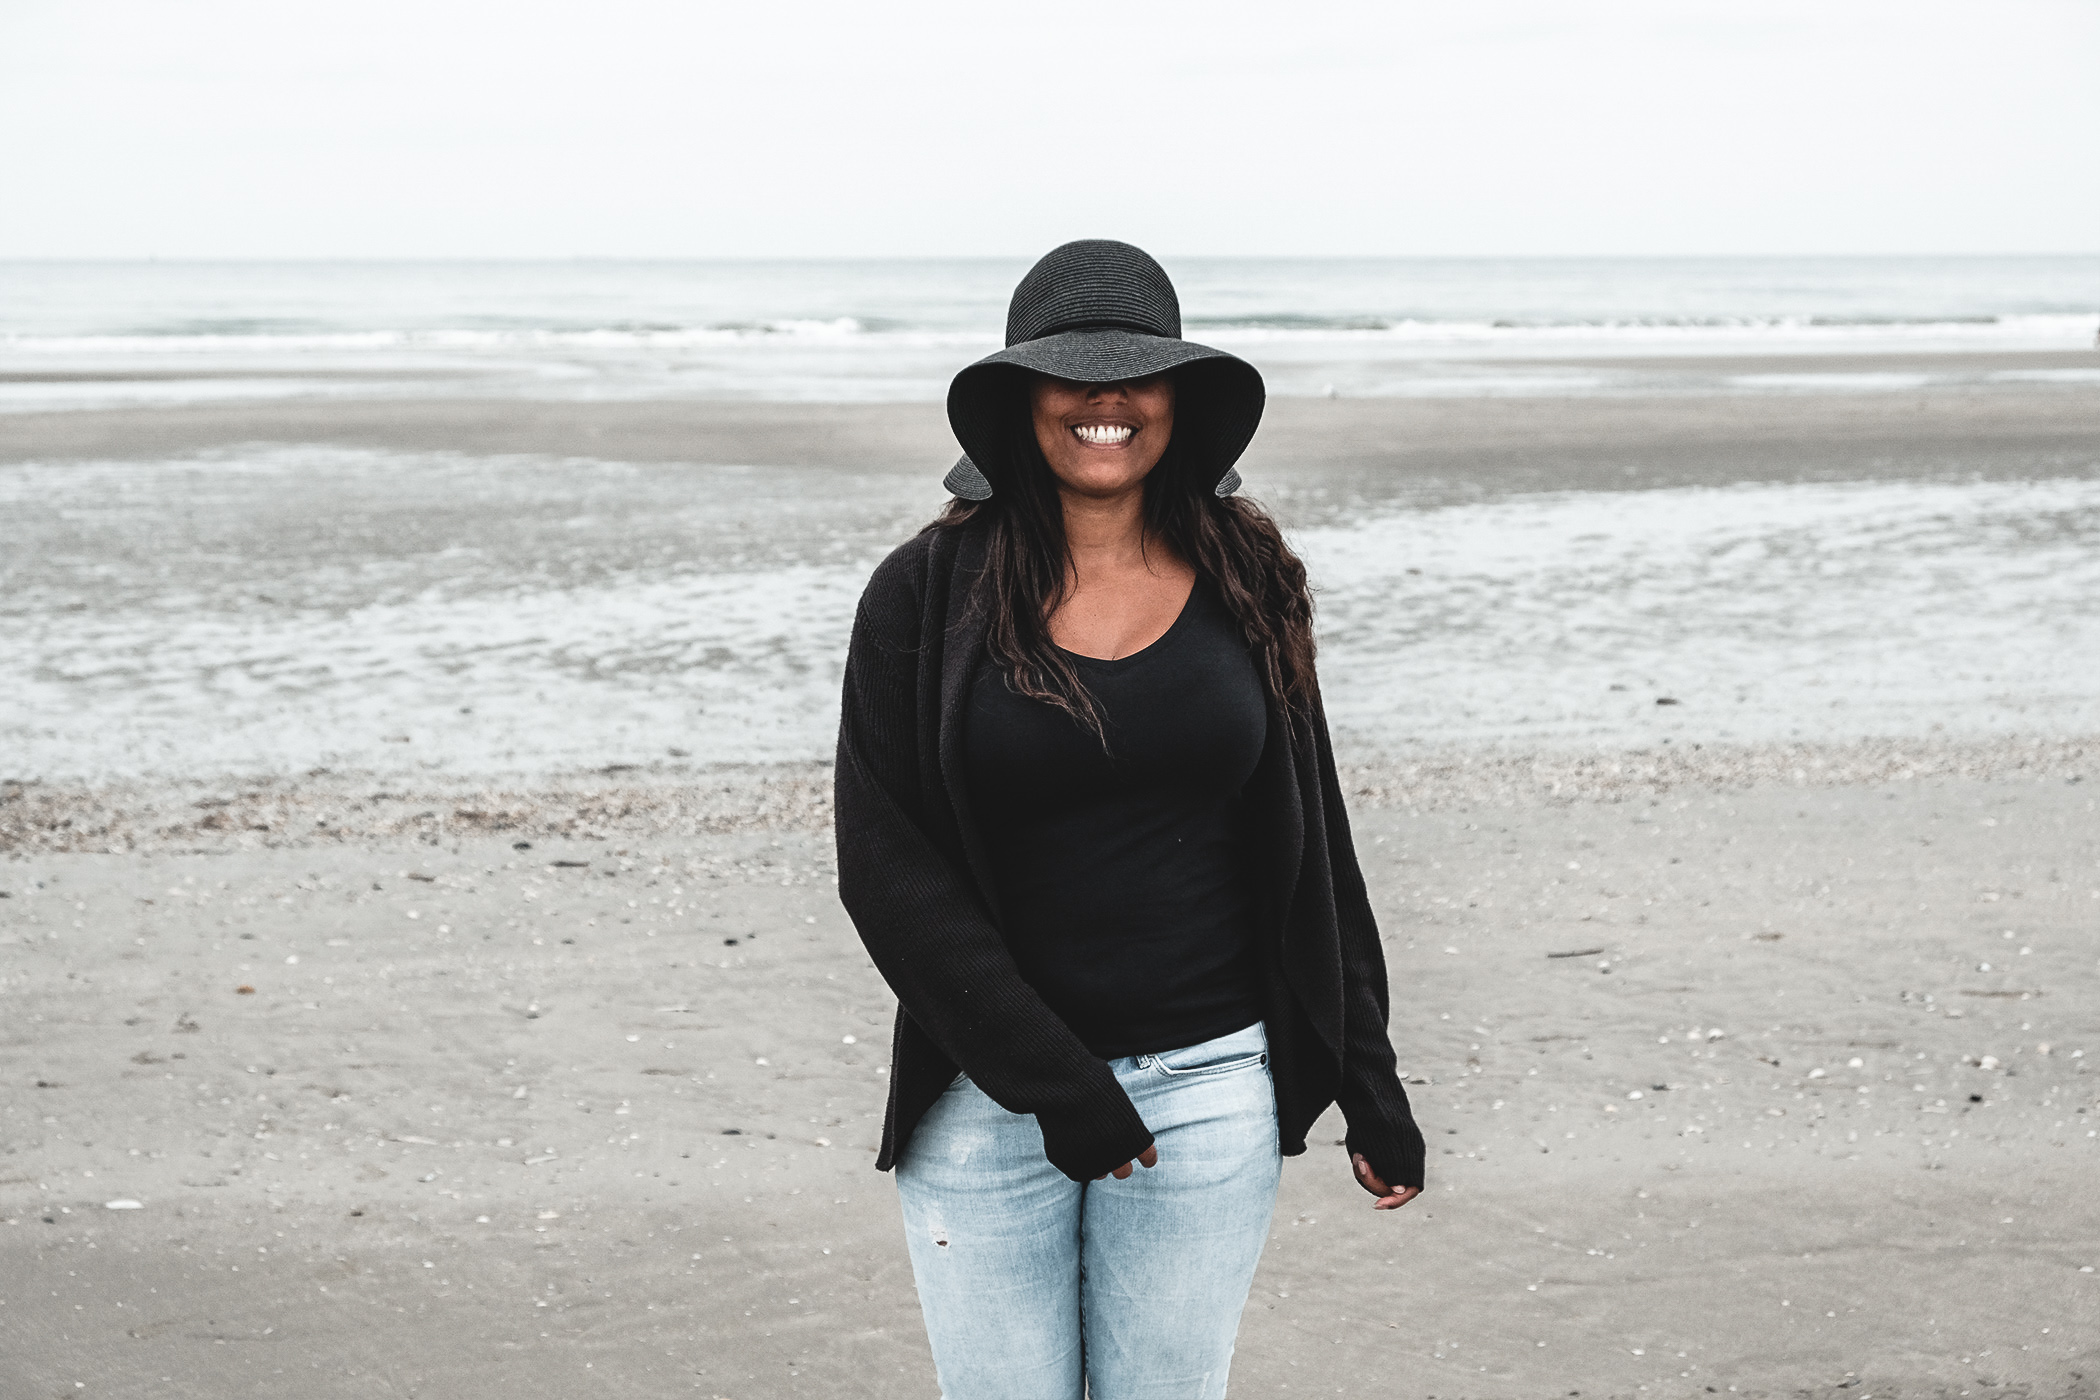 Travel girl at Deauville, sea, Normandy Paris.  Travel writer freelance speaking about positive mind